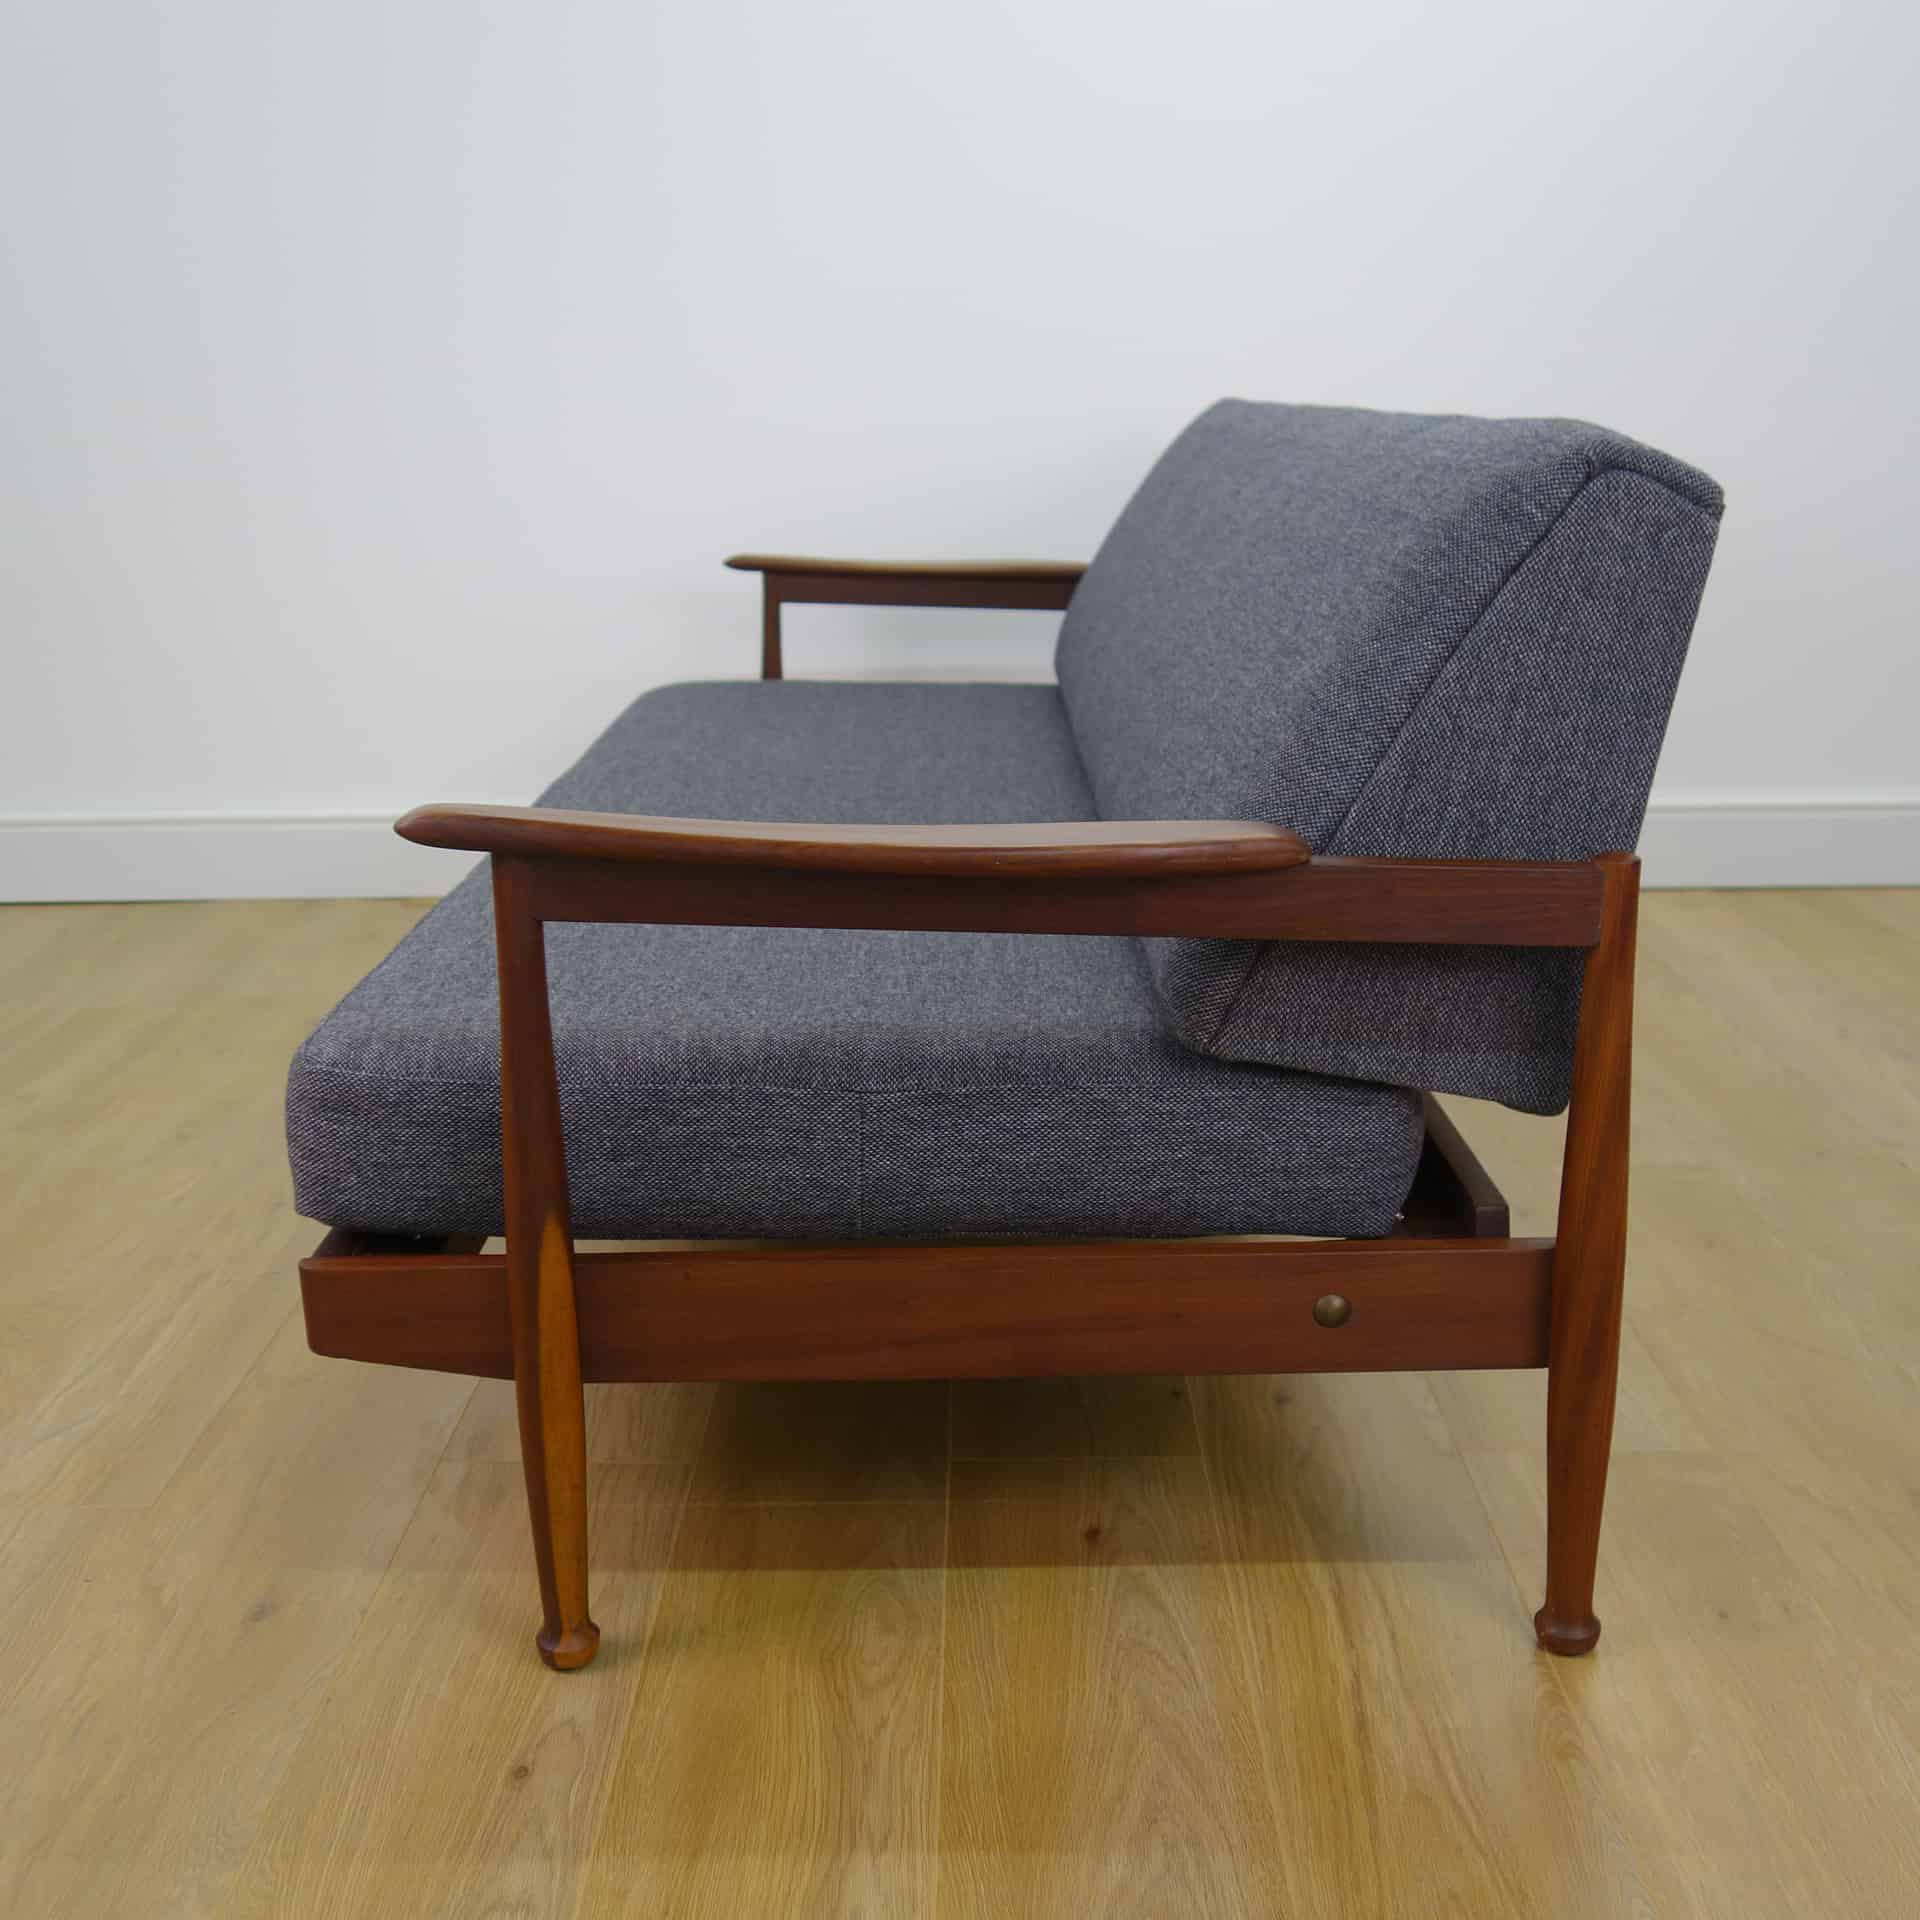 wooden frame sofa uk chair and throws 1960s teak bed by guy rogers mark parrish mid